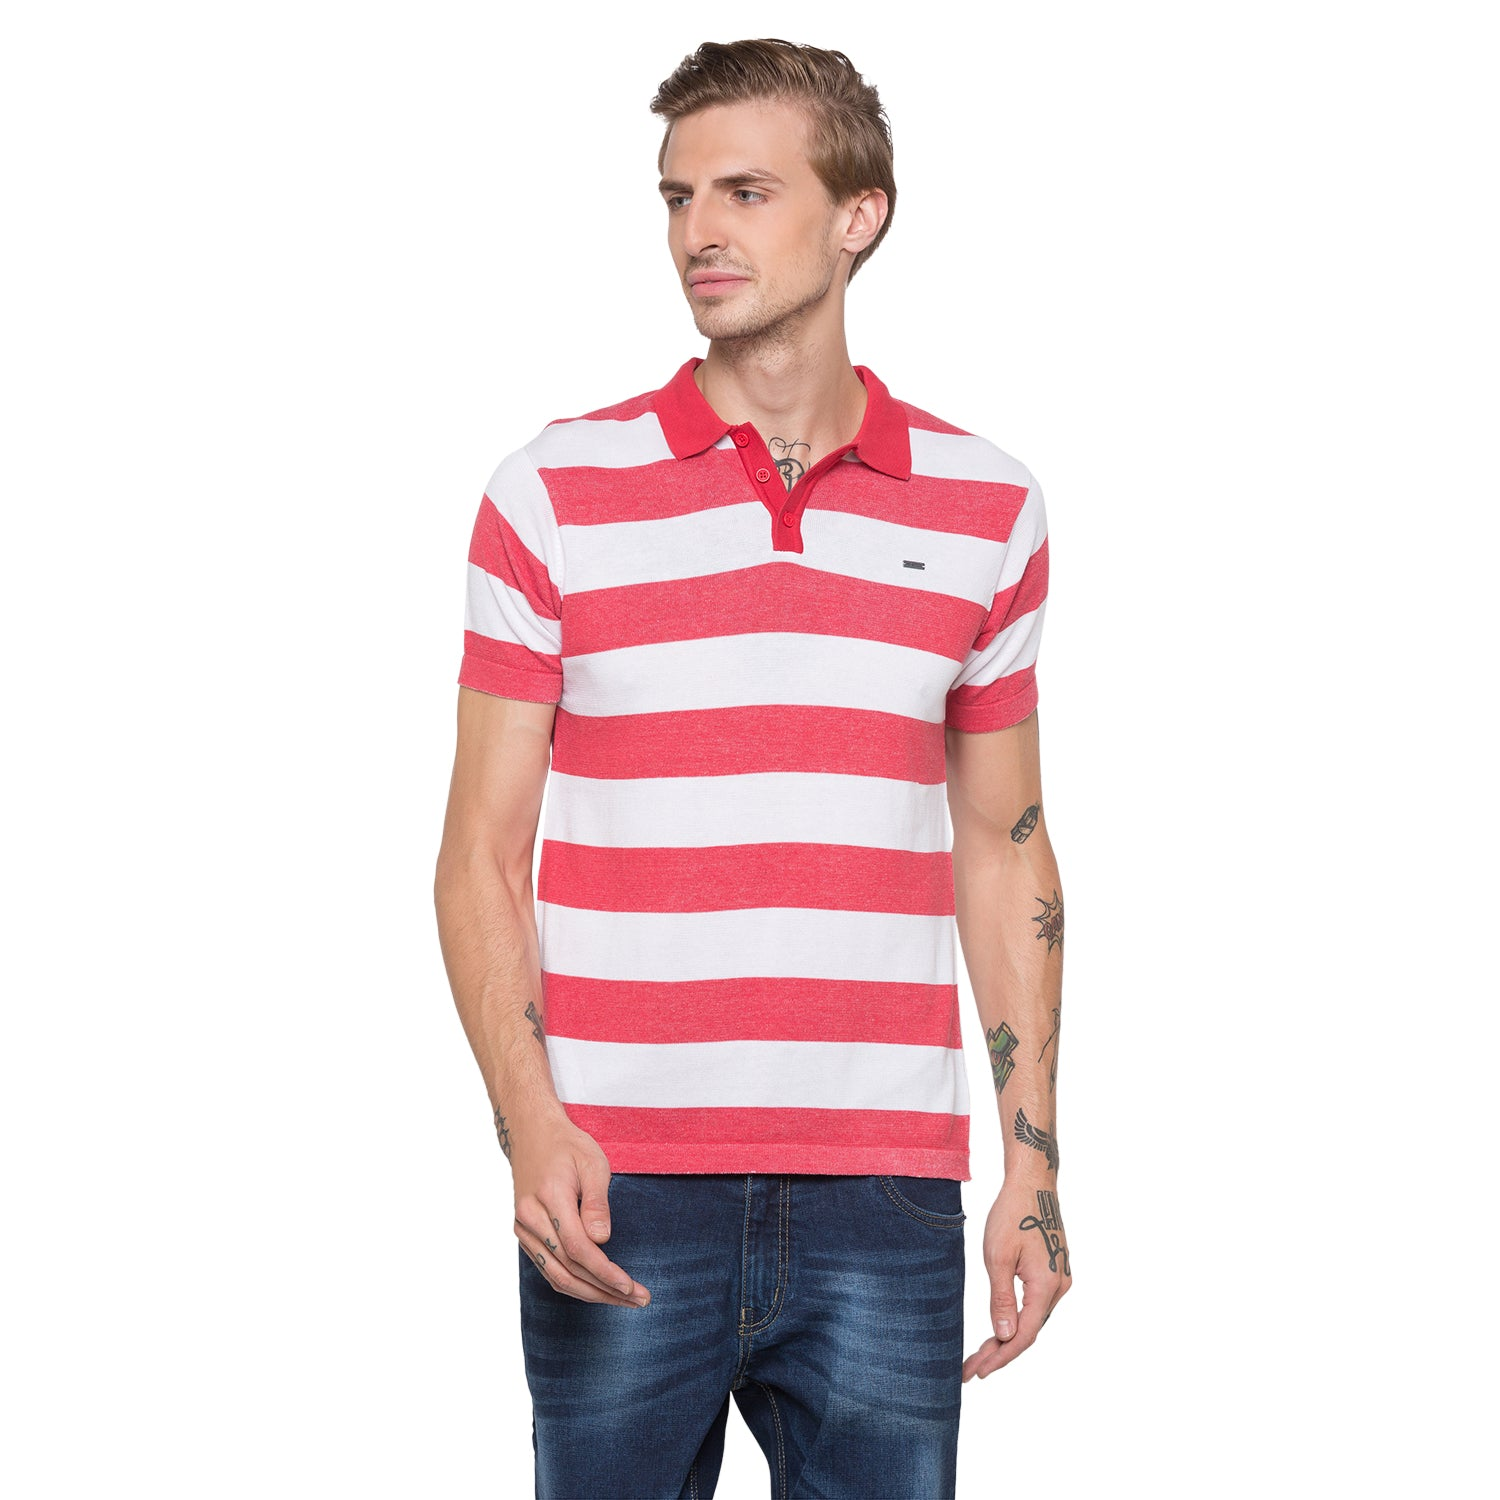 Globus White Striped Polo T-Shirt-1